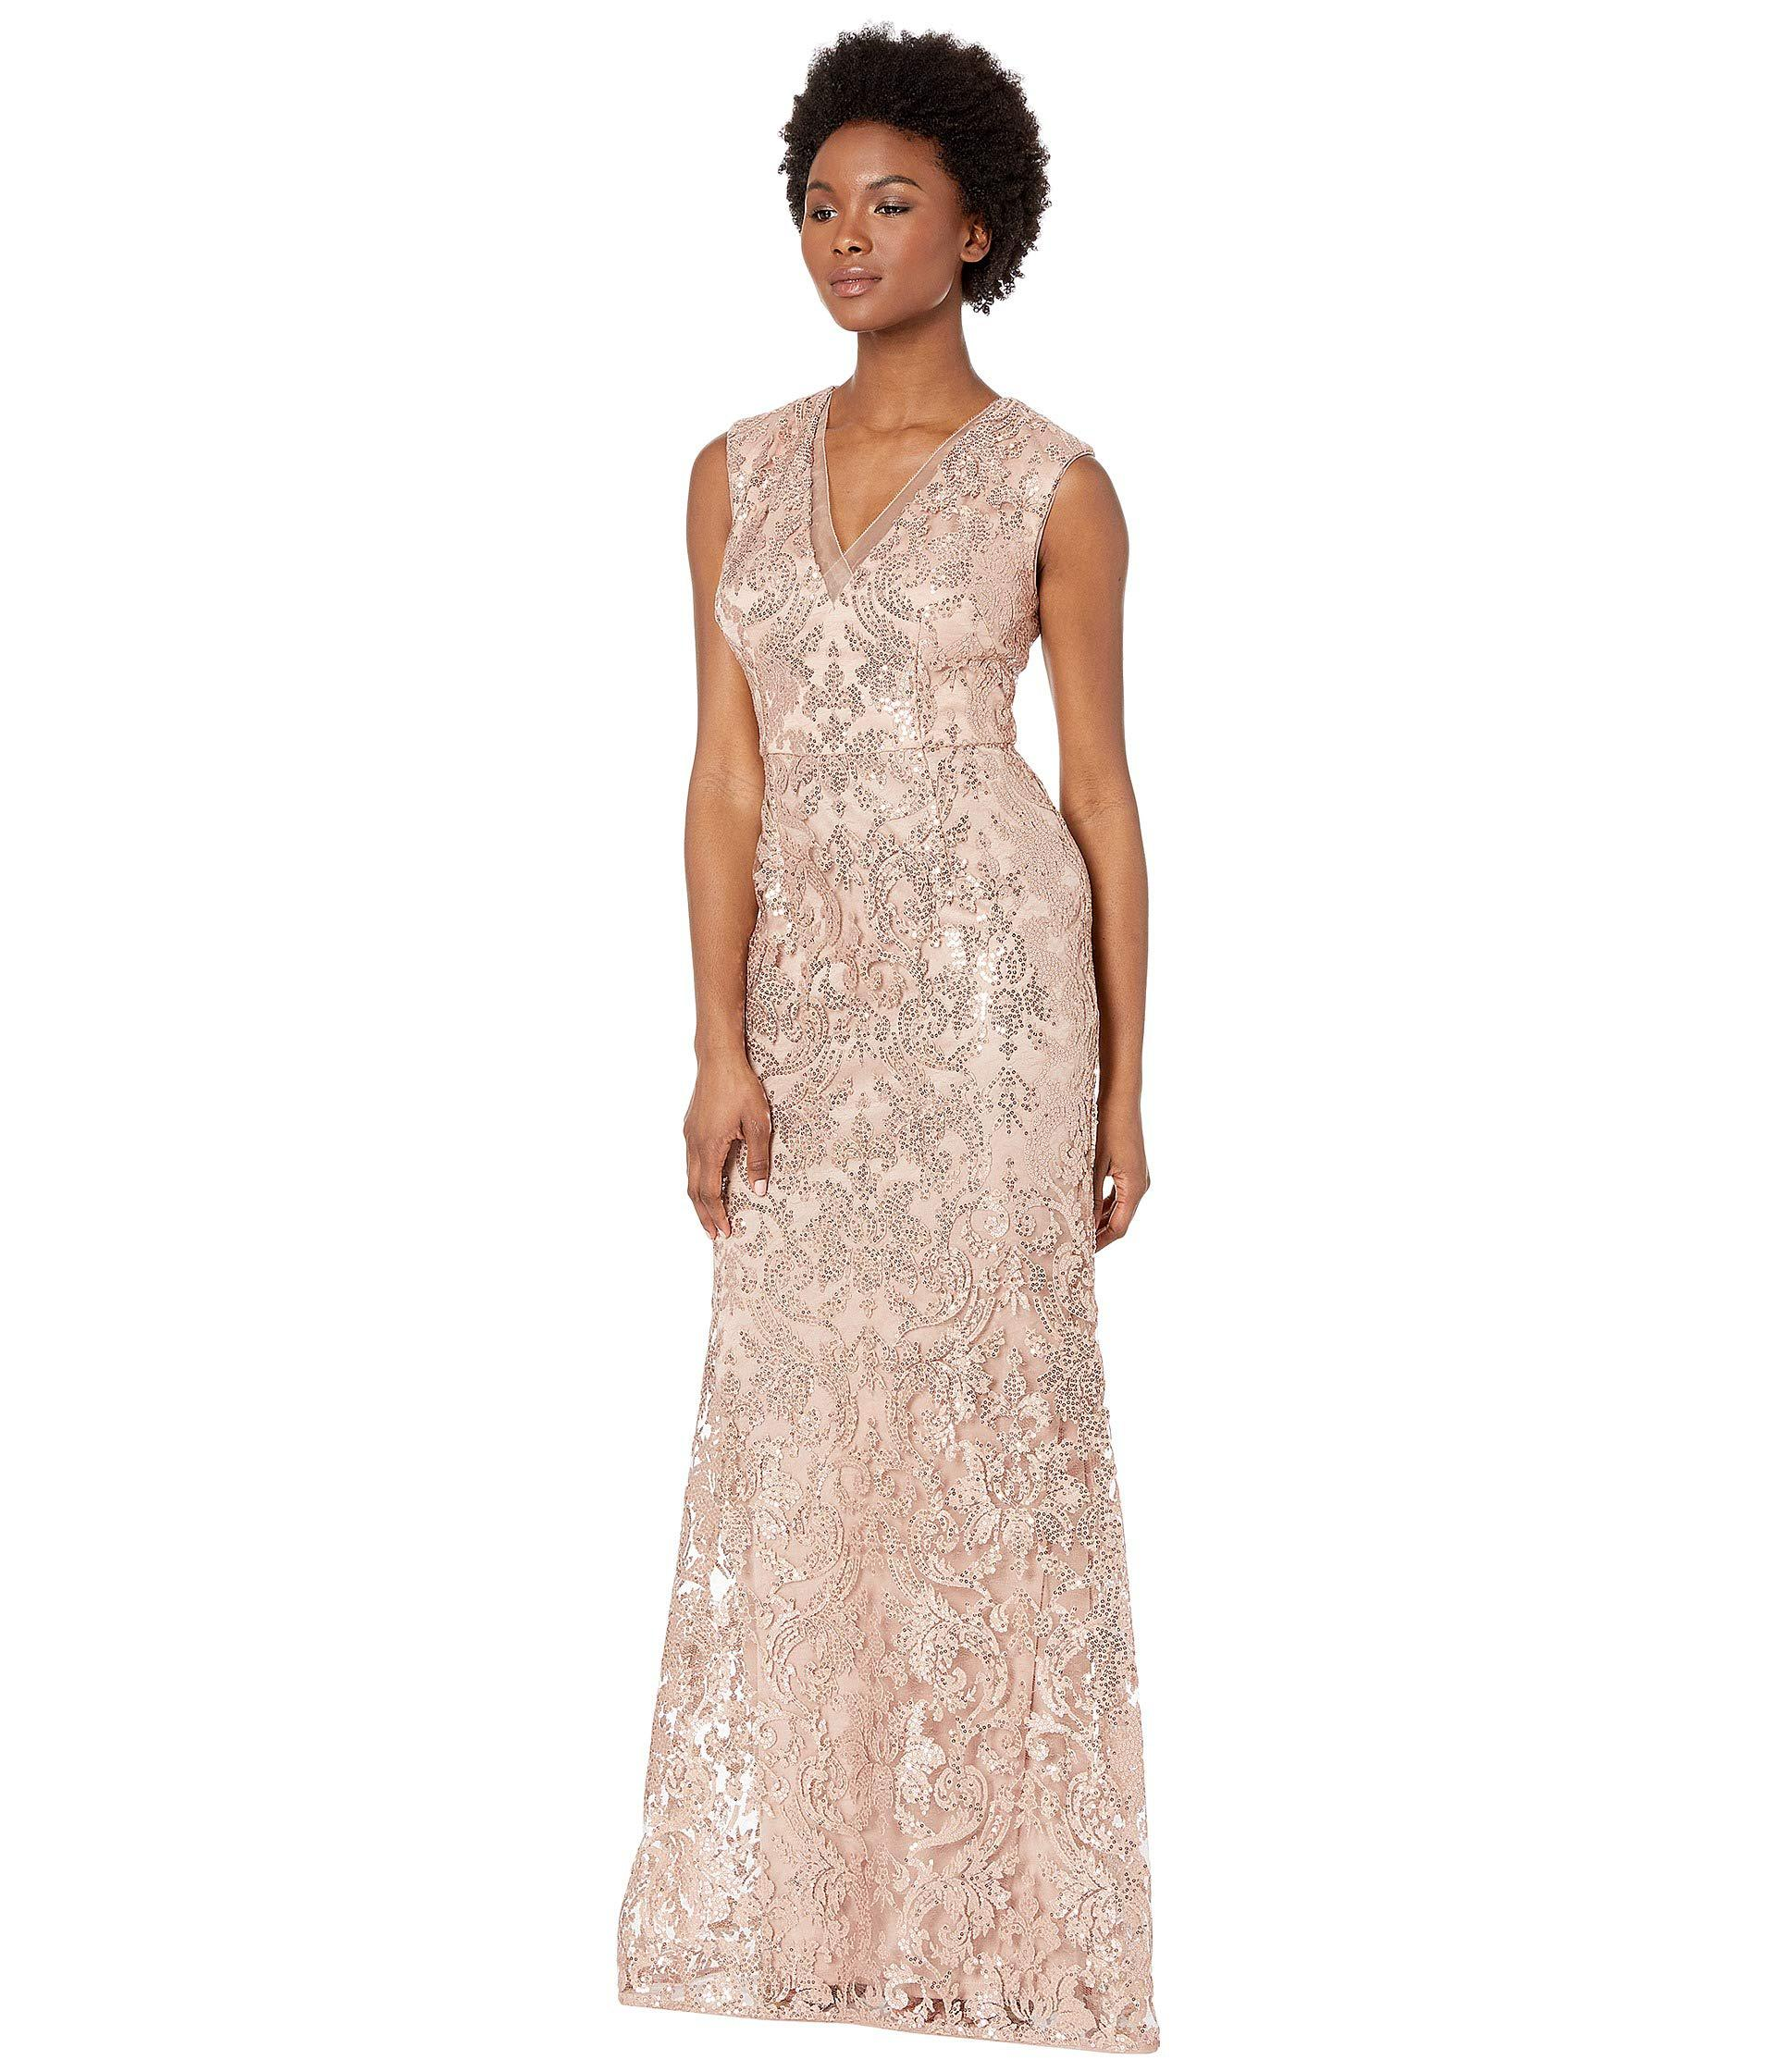 b367dd5861 Adrianna Papell V-neckline All Over Sequin Embroidery Modified ...